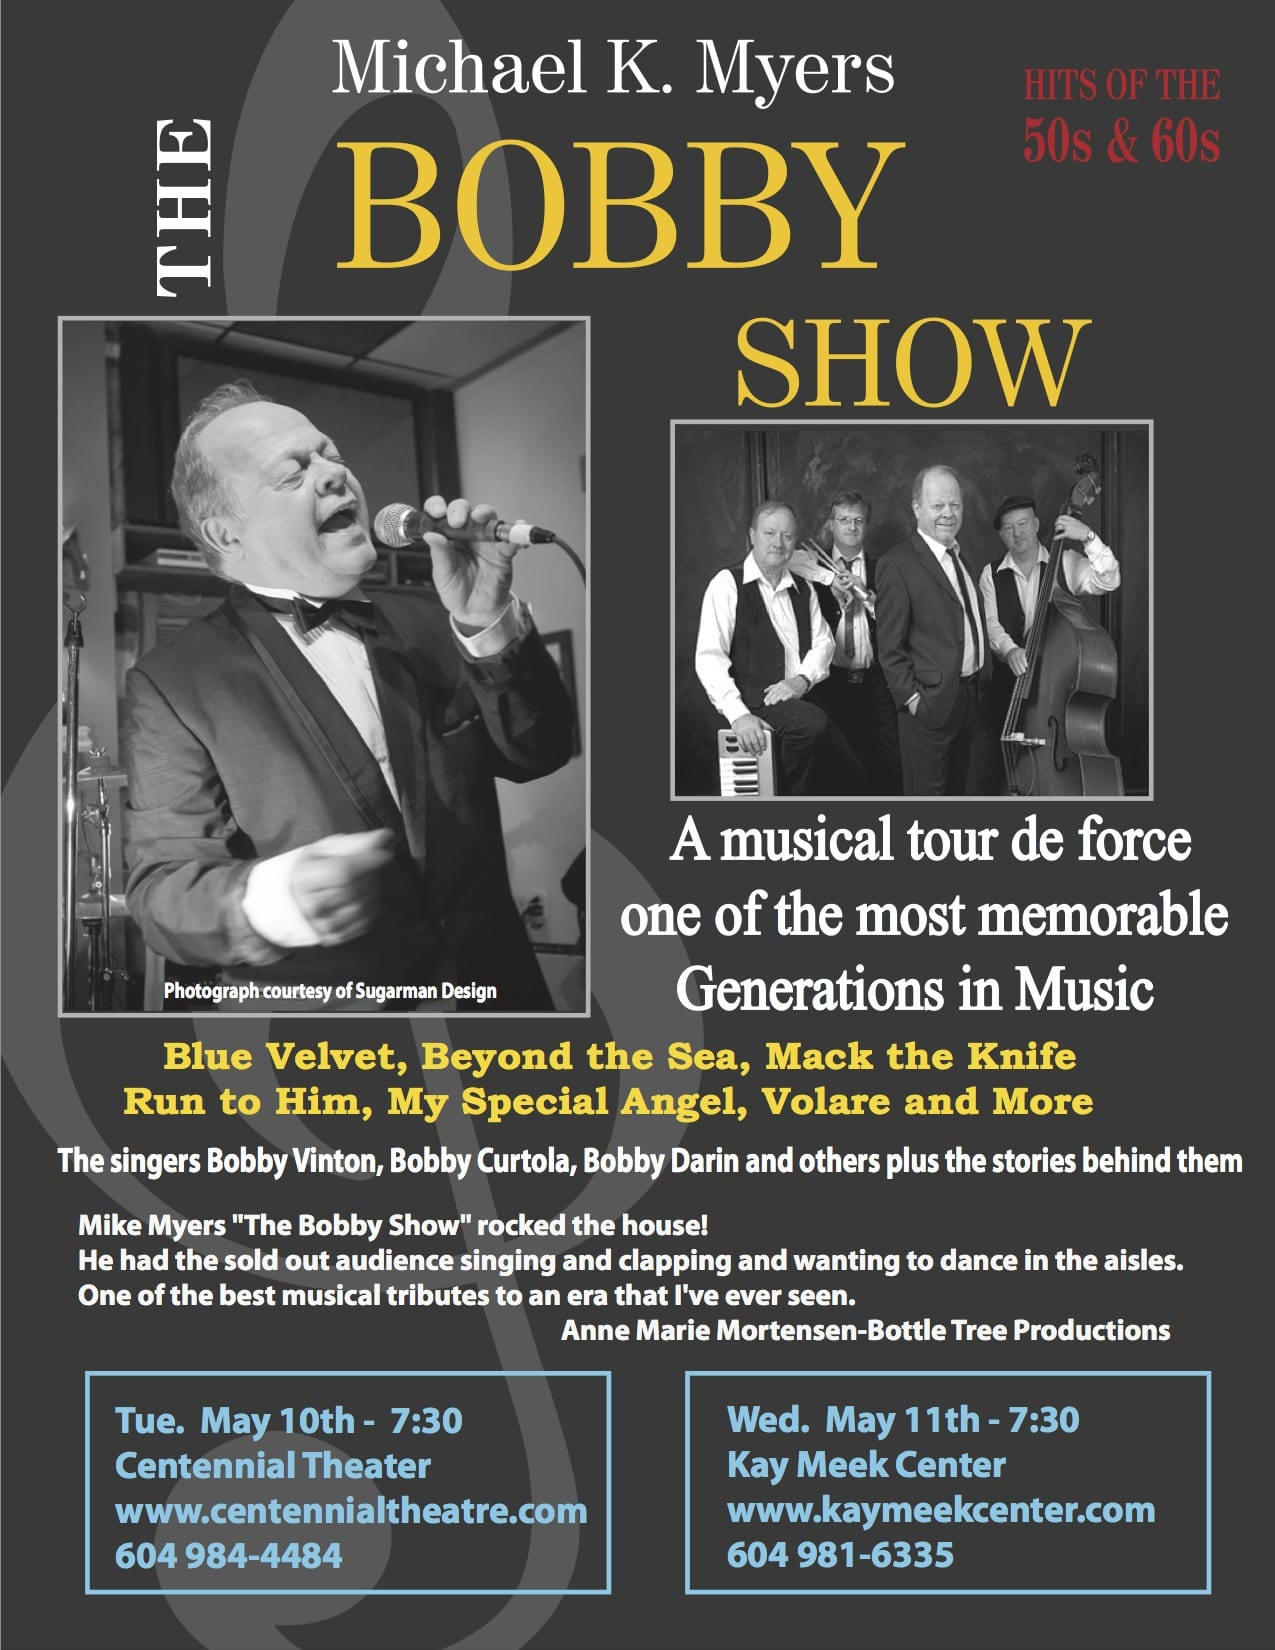 The Bobby Show a Musical Evening at the Kay Meek Centre West Vancouver